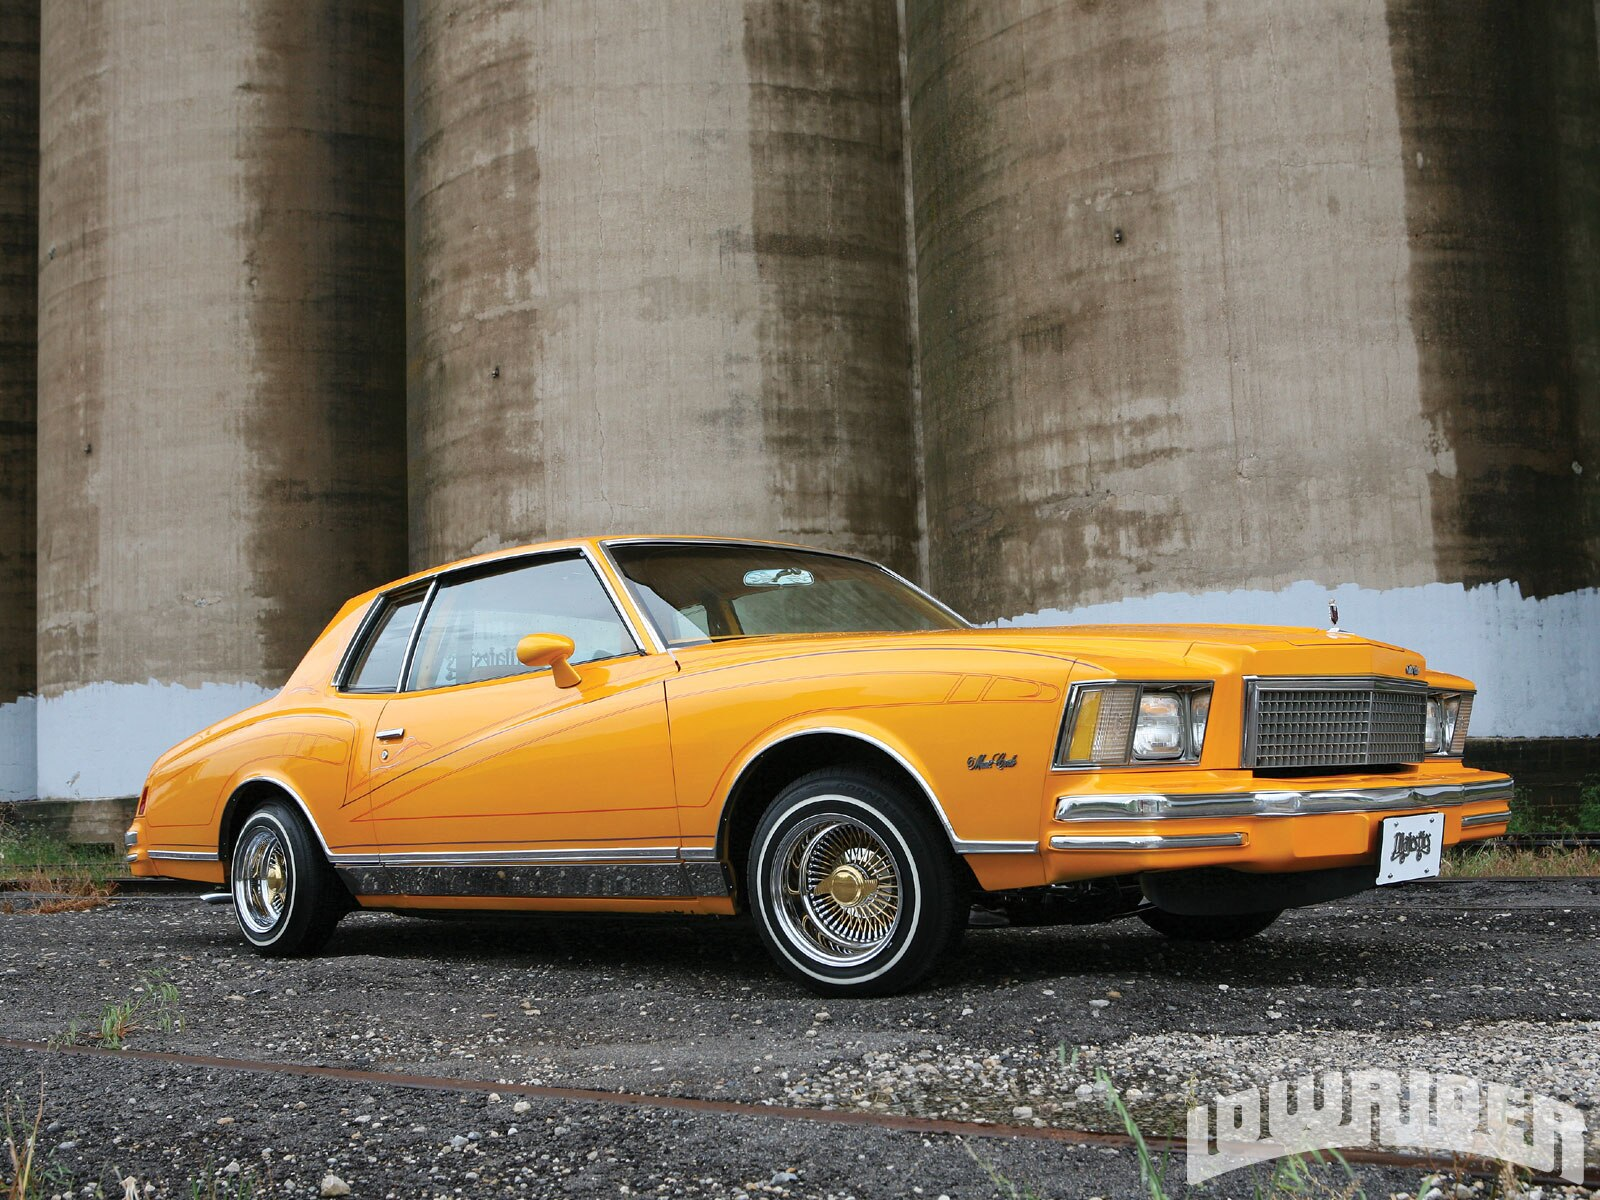 lrmp_1104_01_o-1978_chevy_monte_carlo-side_view3